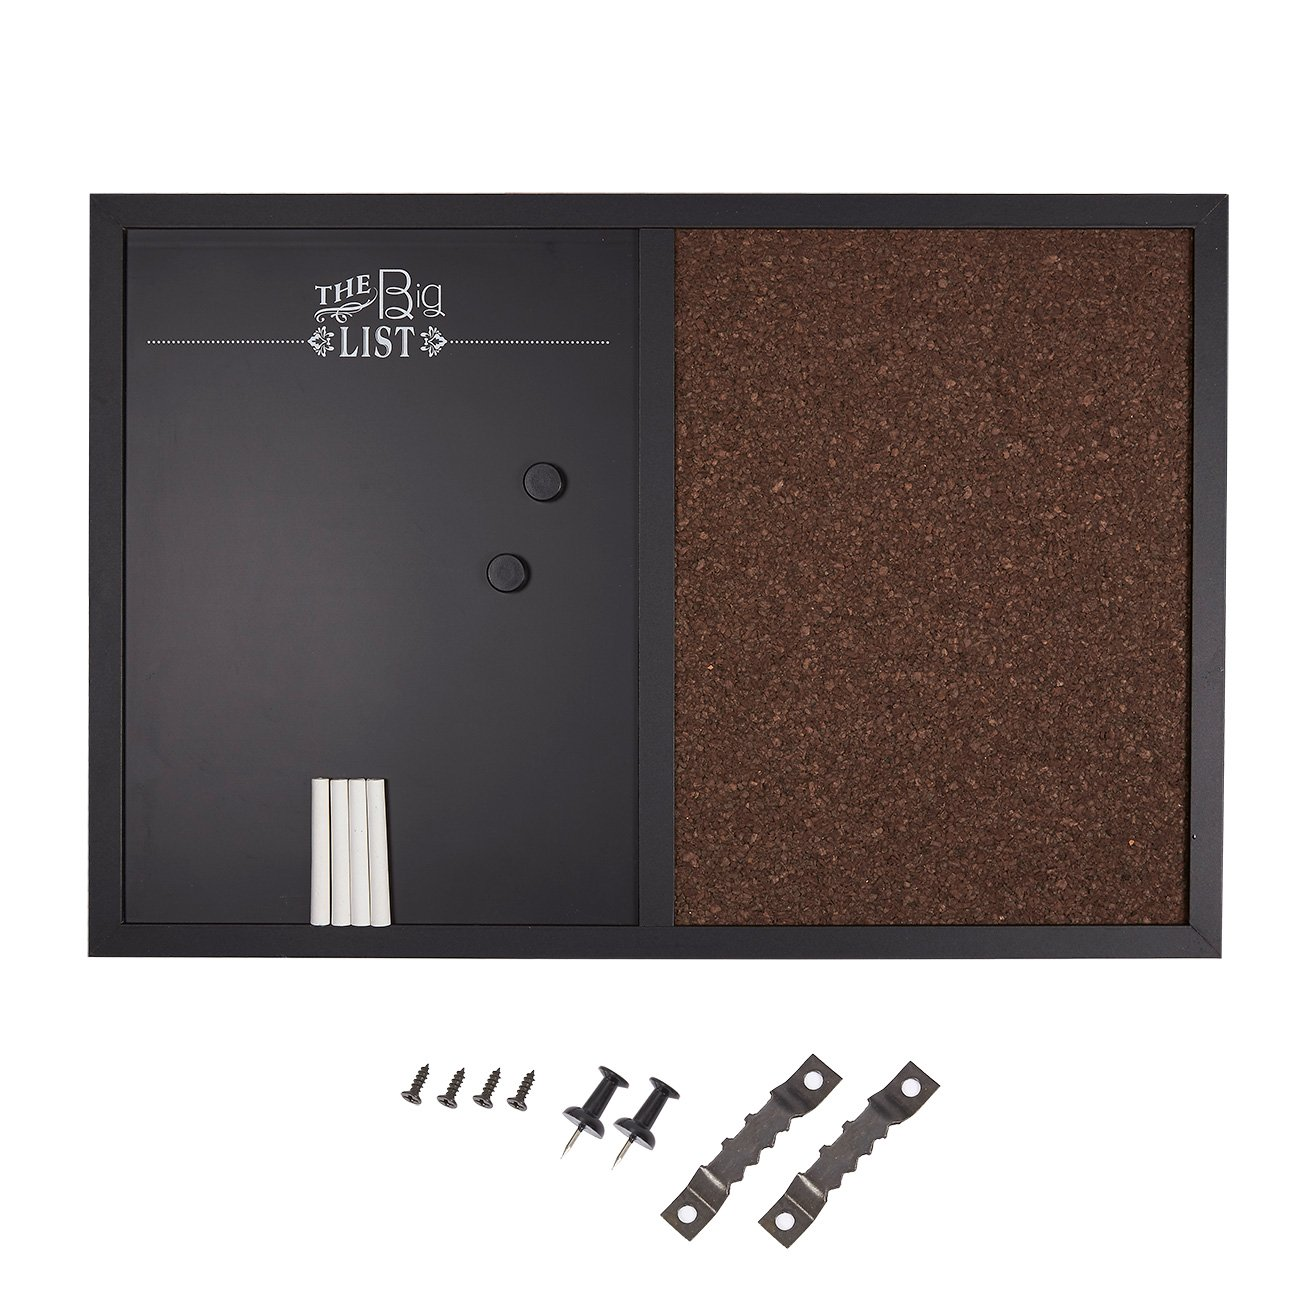 Message Center Bulletin Wall Board - Magnetic Chalkboard and Corkboard Combination for Office Supplies, Home Decoration with 4 Chalk Markers, 2 Round Magnets and 4 Push Pins, 23.6 x 15.7 x 0.7 inches